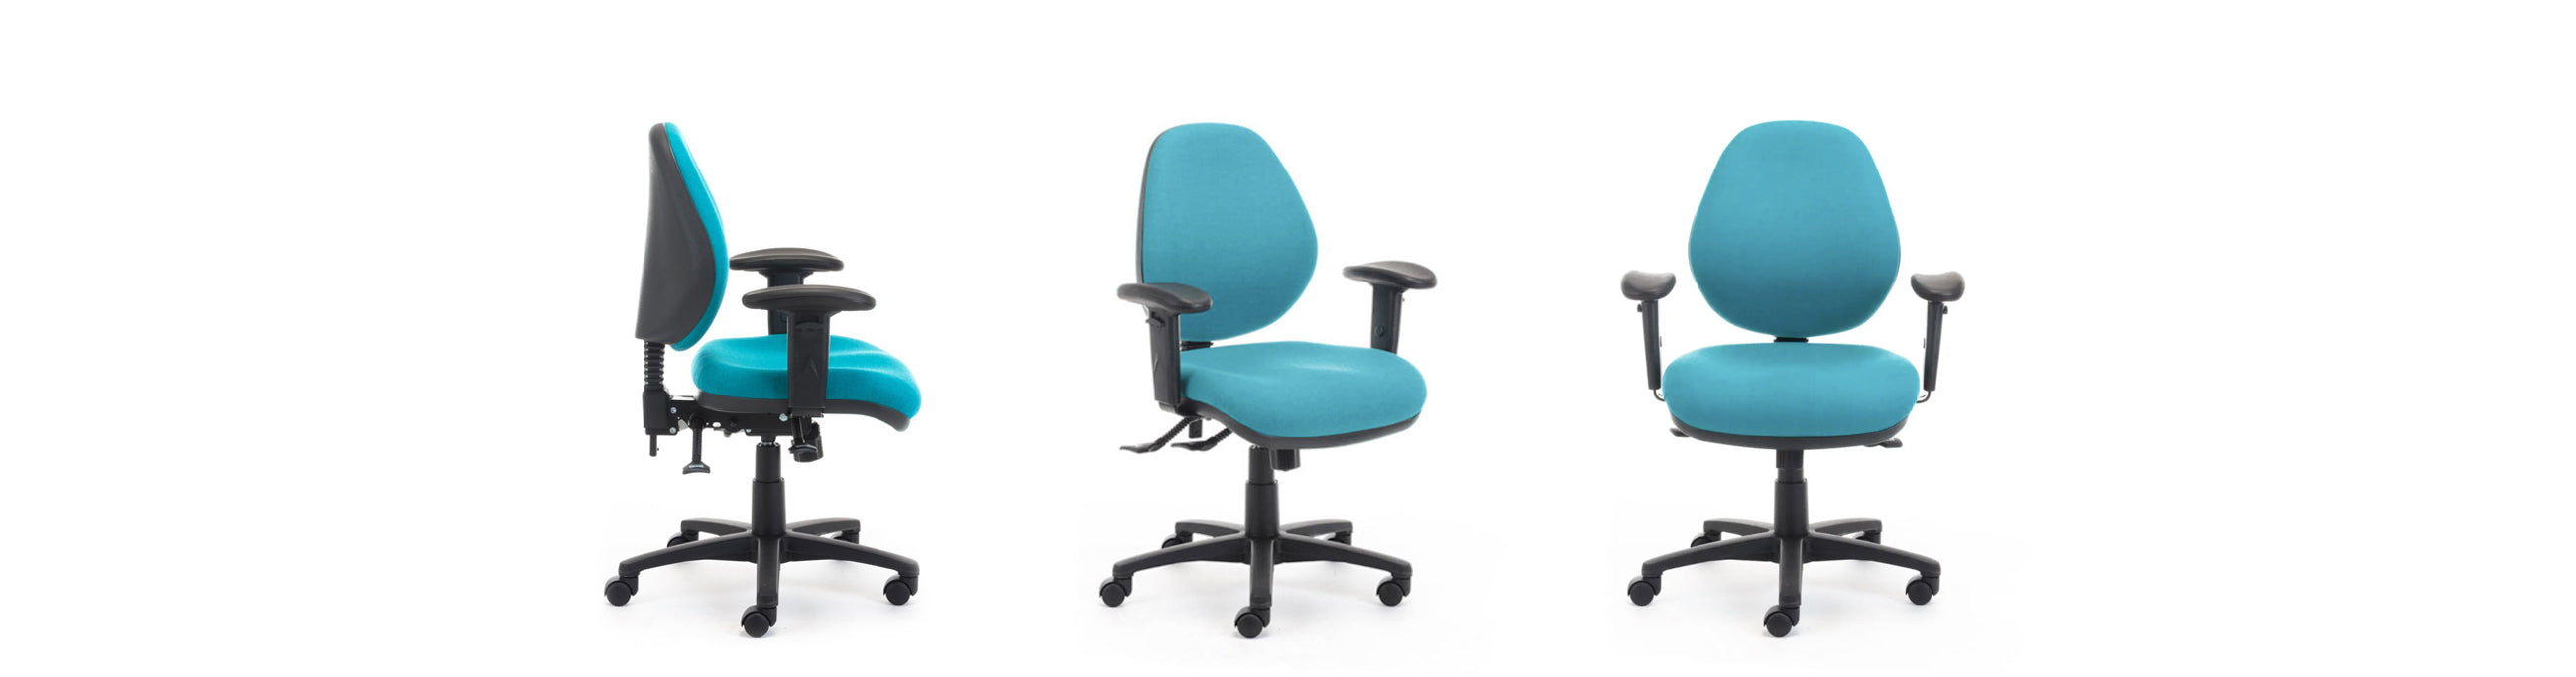 Chair Solutions Atlas 135 Heavy Duty Office Chair